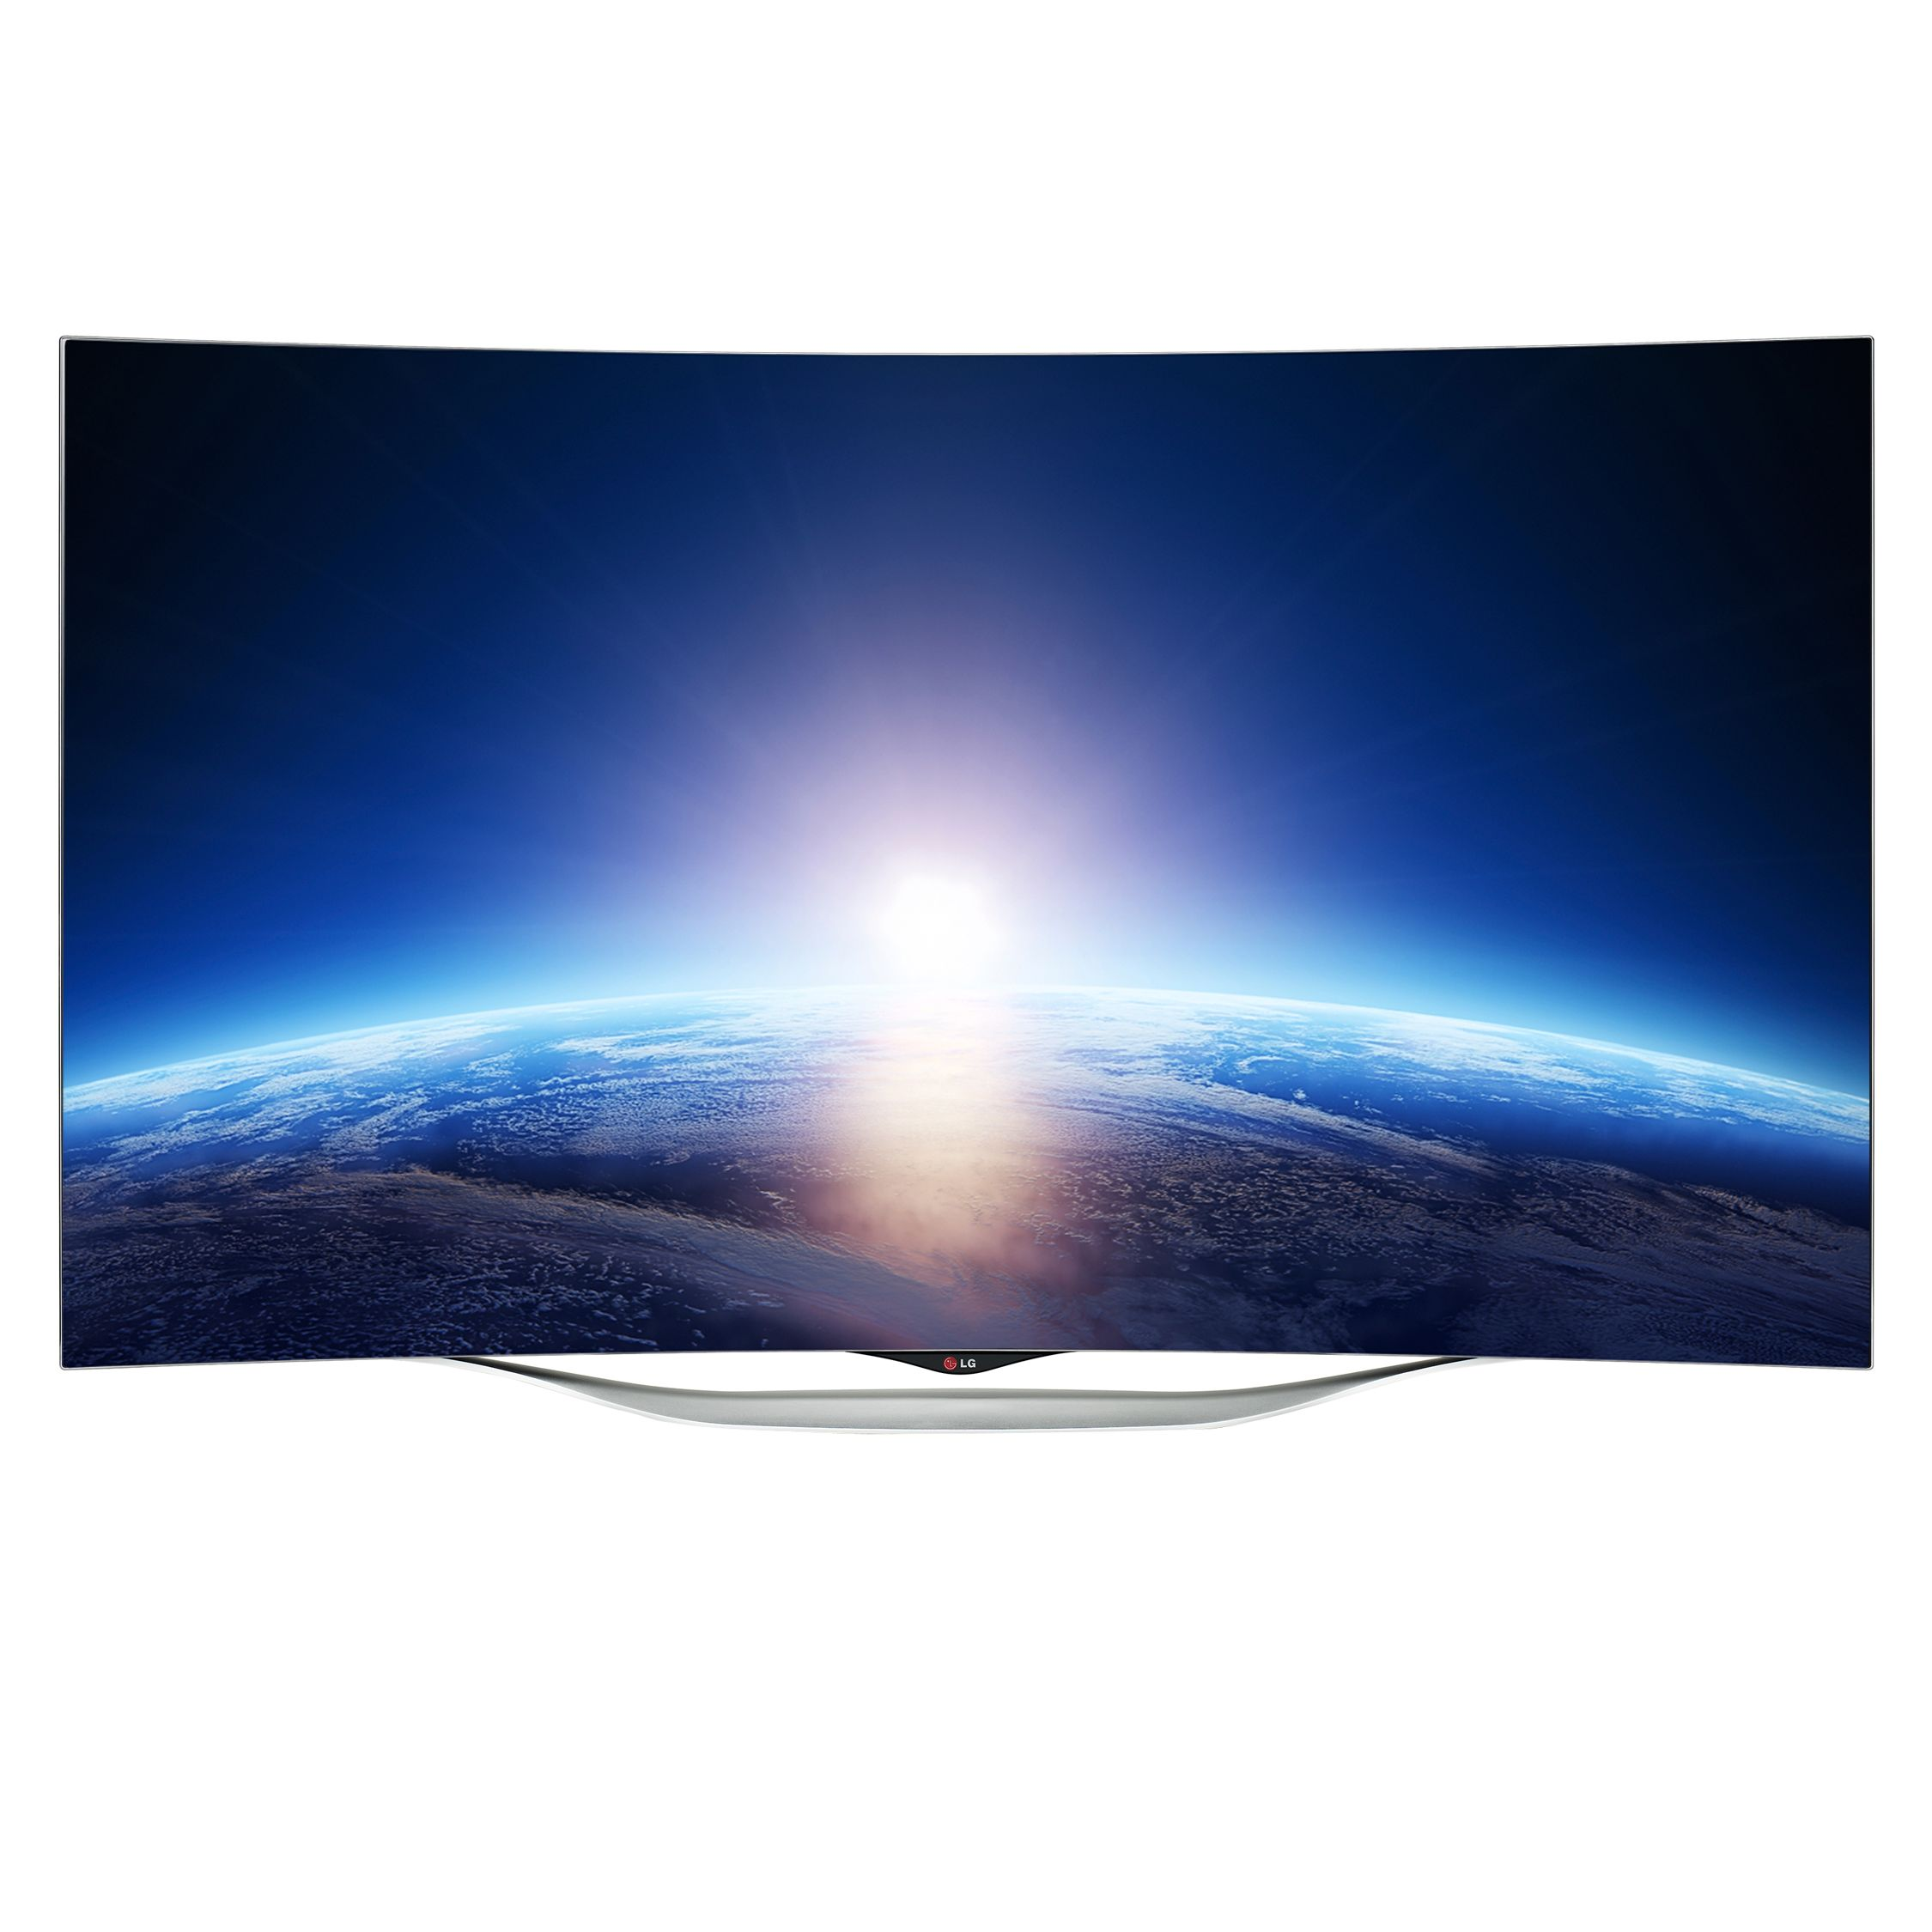 View our OLED TVs